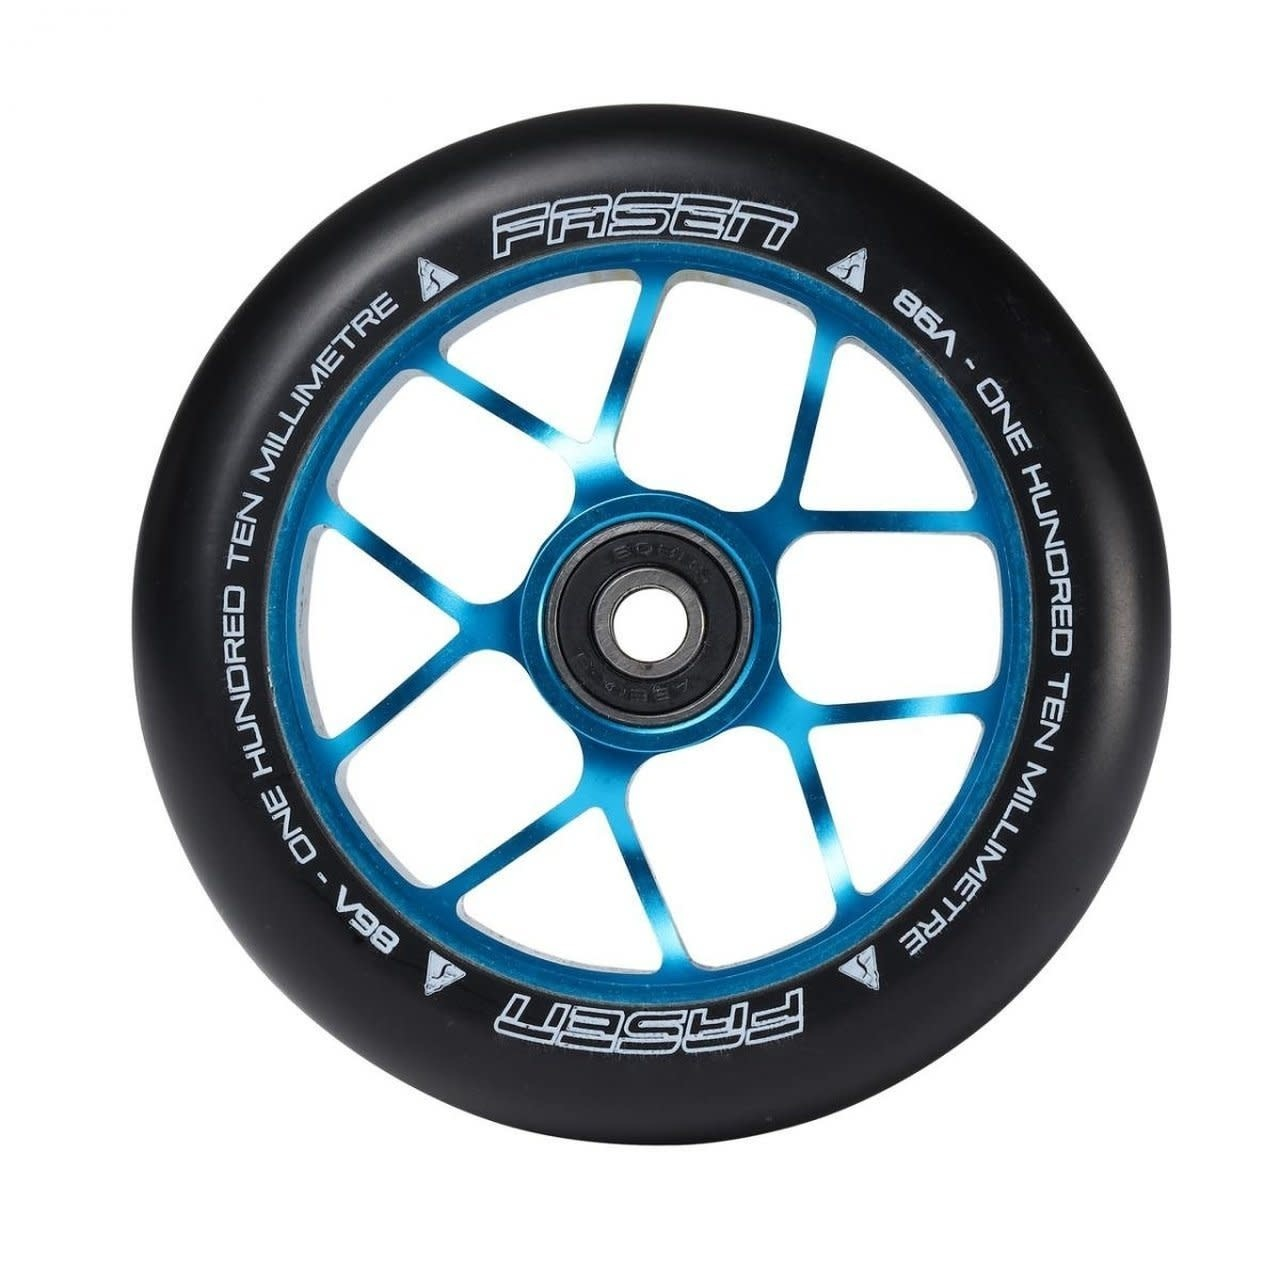 Envy FASEN JET WHEELS